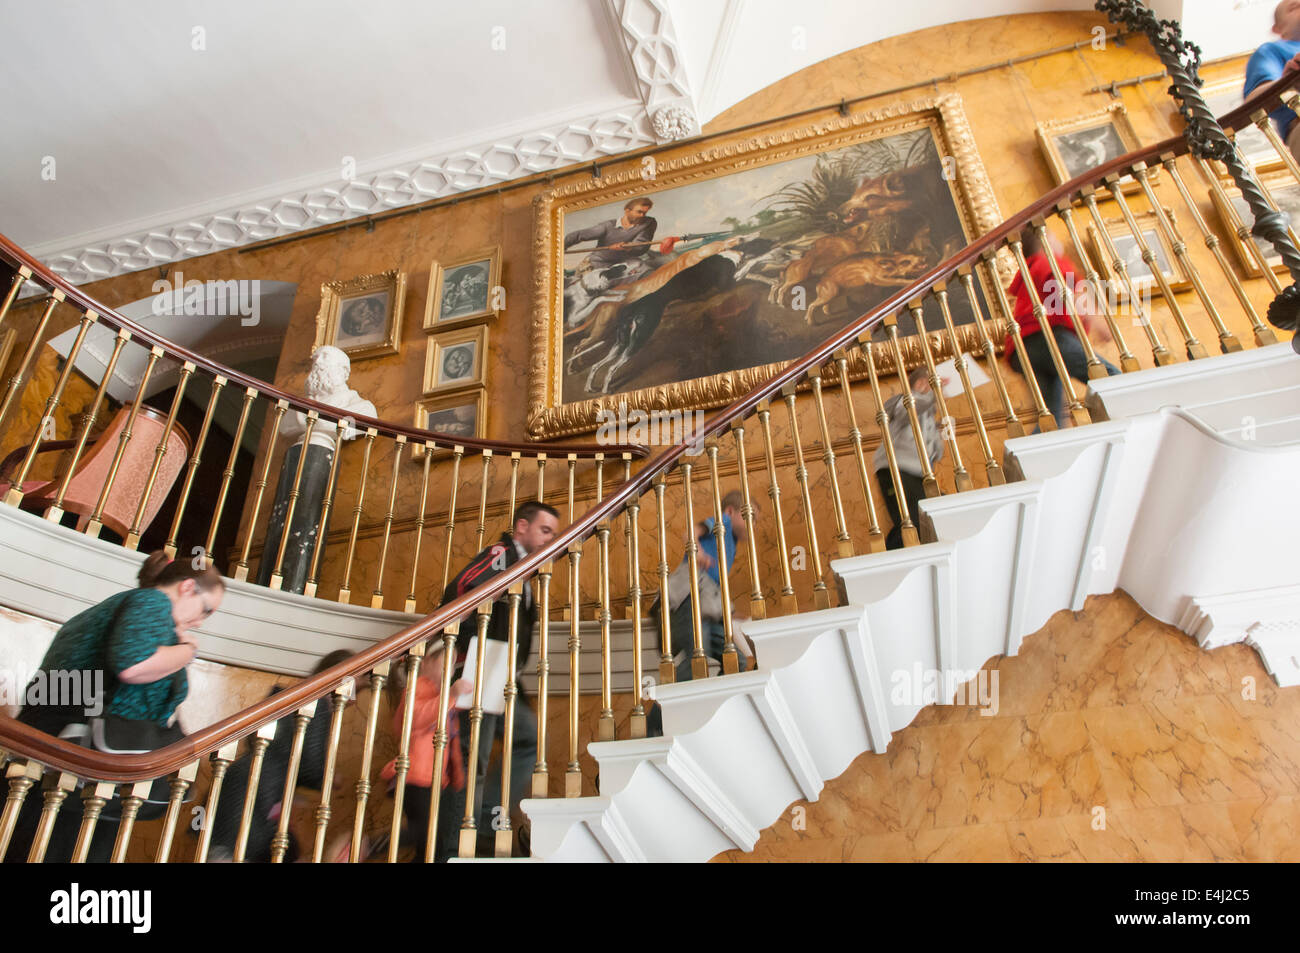 People Walking Up An Ornate Staircase In A Stately Home With Many Polished  Brass Spindles